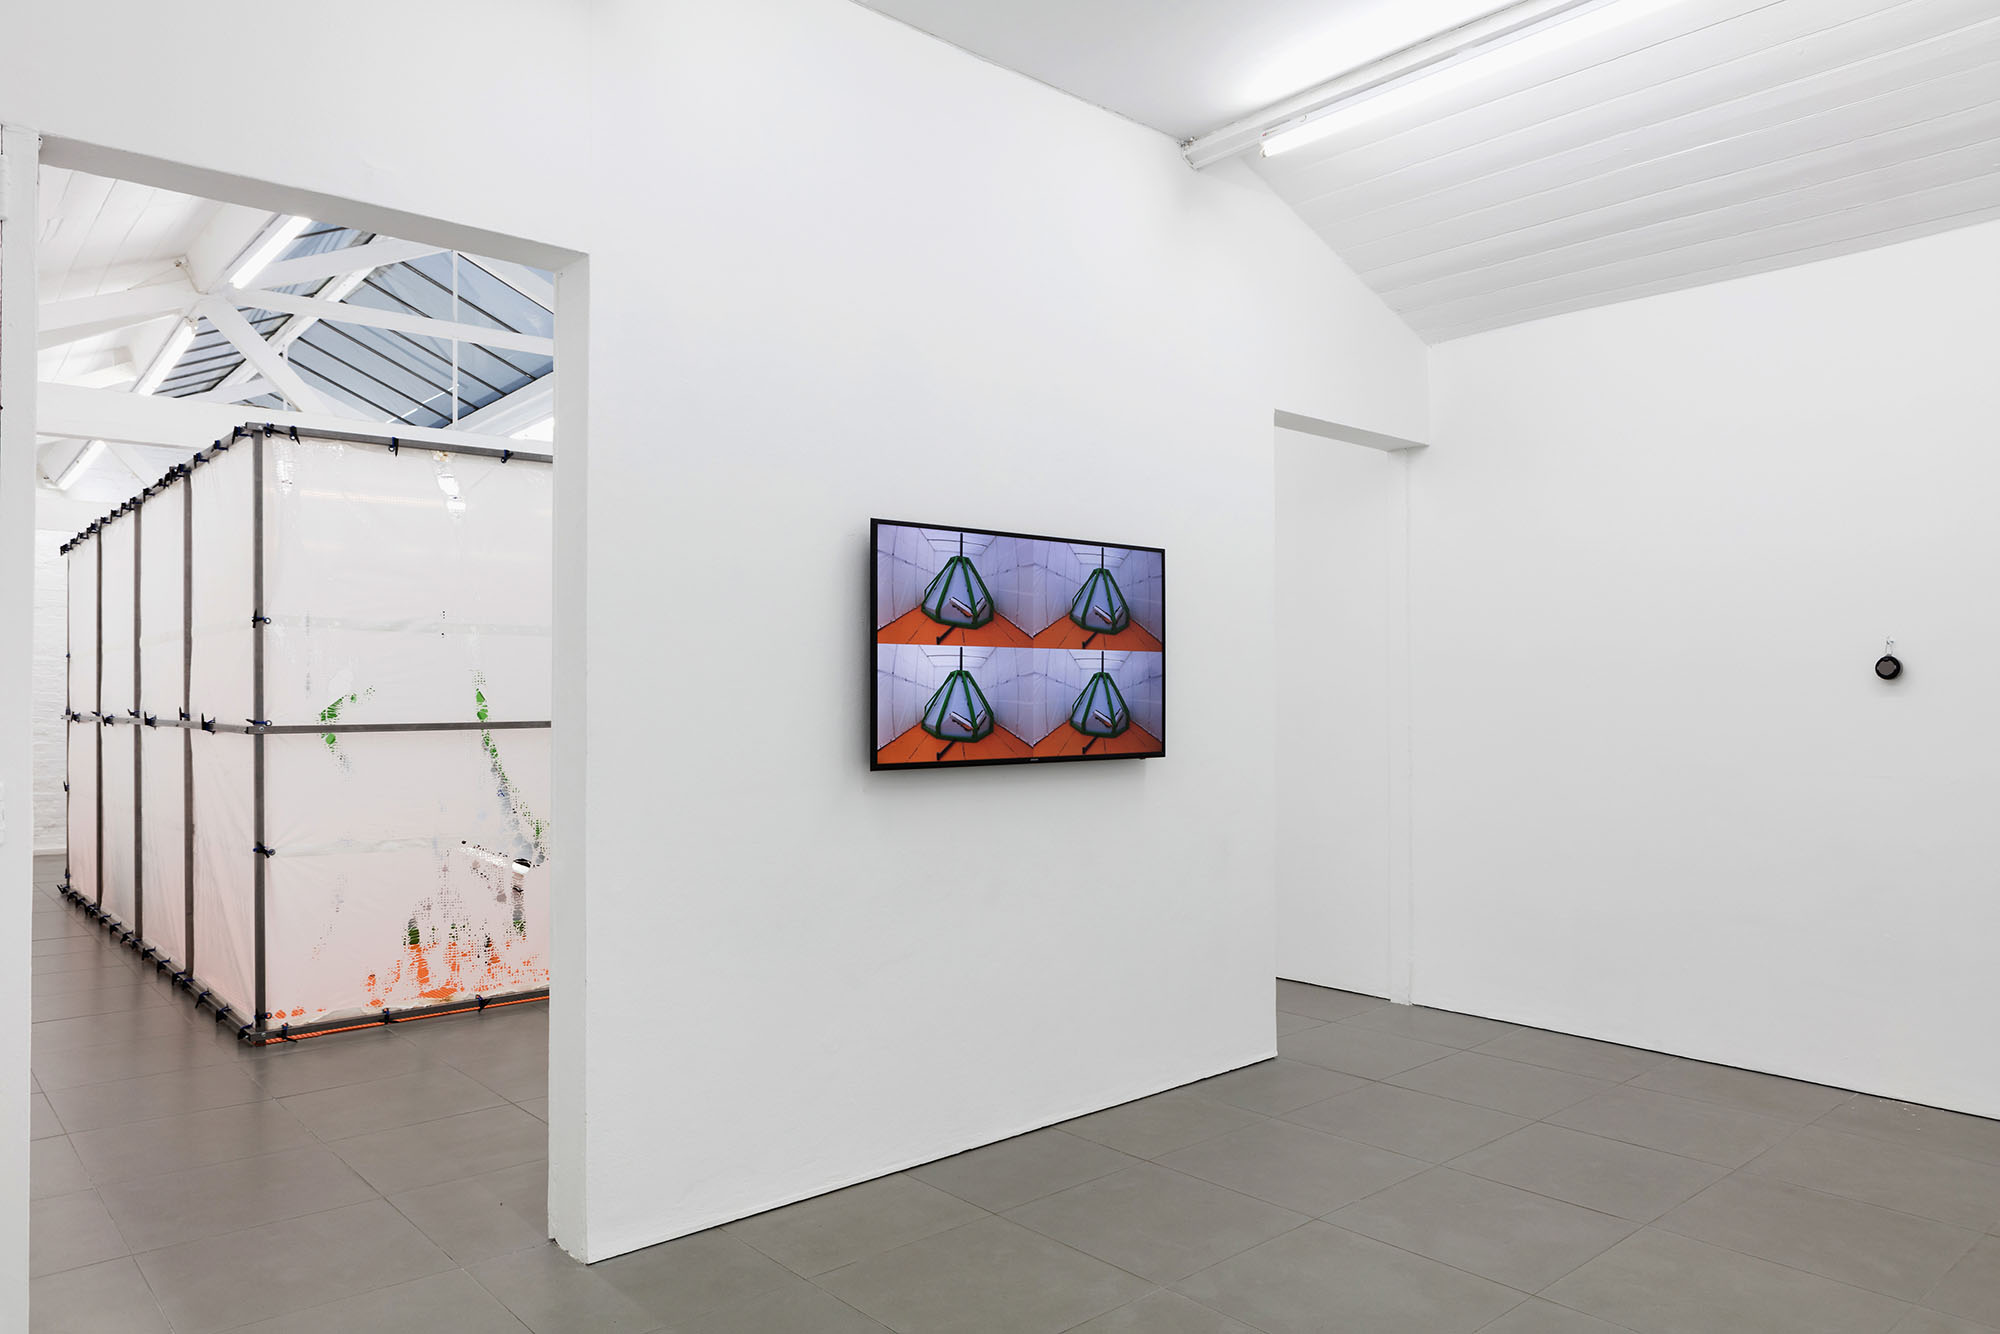 Anne De Vries at Cell Project Space